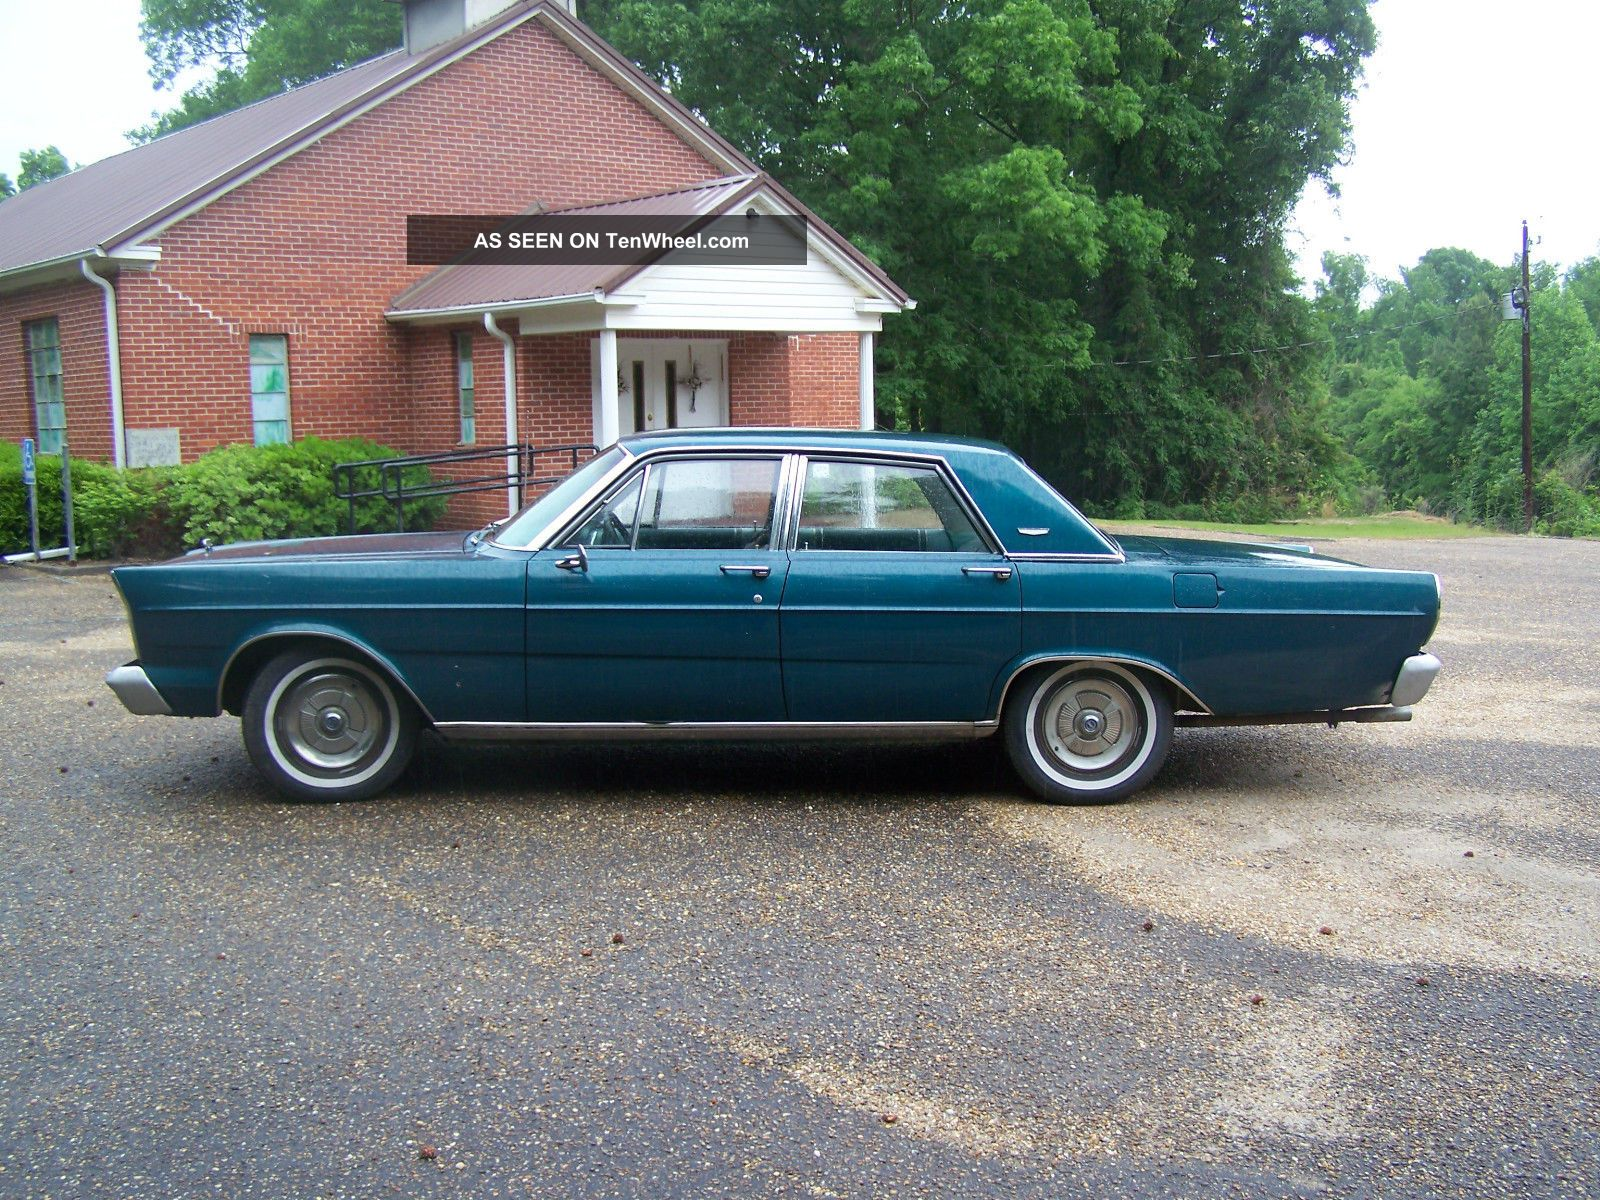 1965 Ford Galaxie 500 4 Door With 390 4 Barrel And Automatic Trans